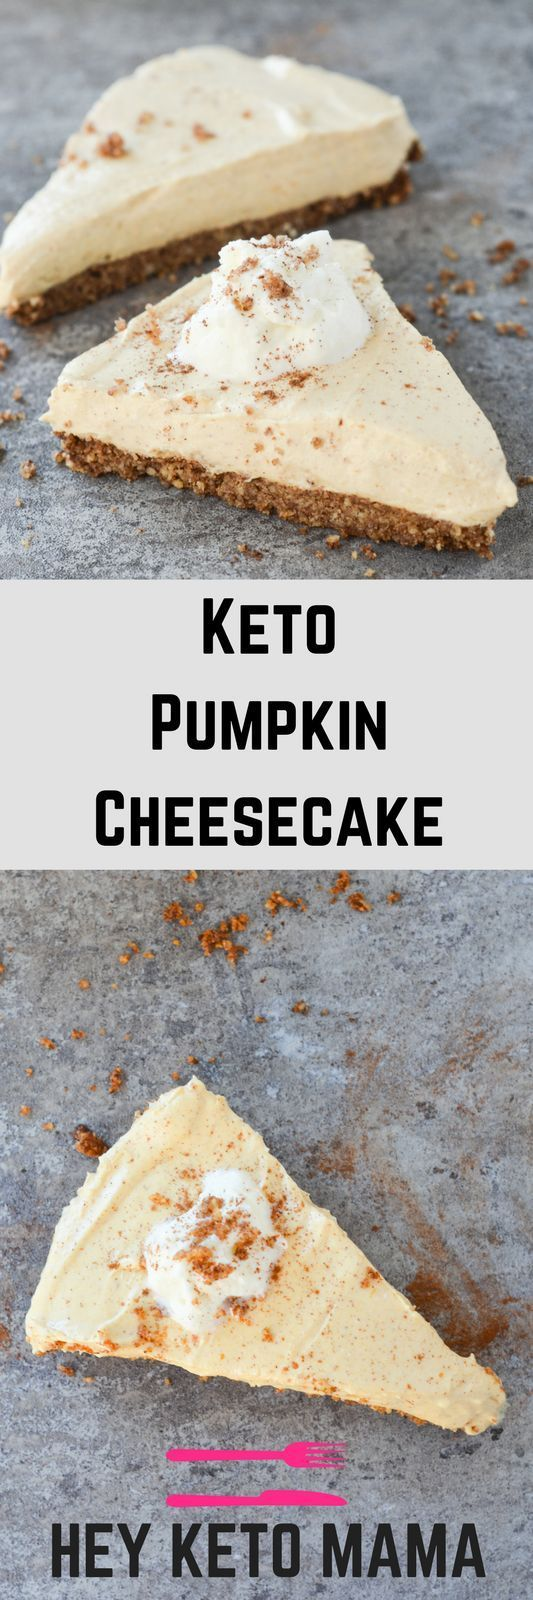 Keto Pumpkin Cheesecake is always the answer, no matter the question. Check out this easy recipe to make a Fall favorite low carb style! | heyketomama.com via @heyketomama